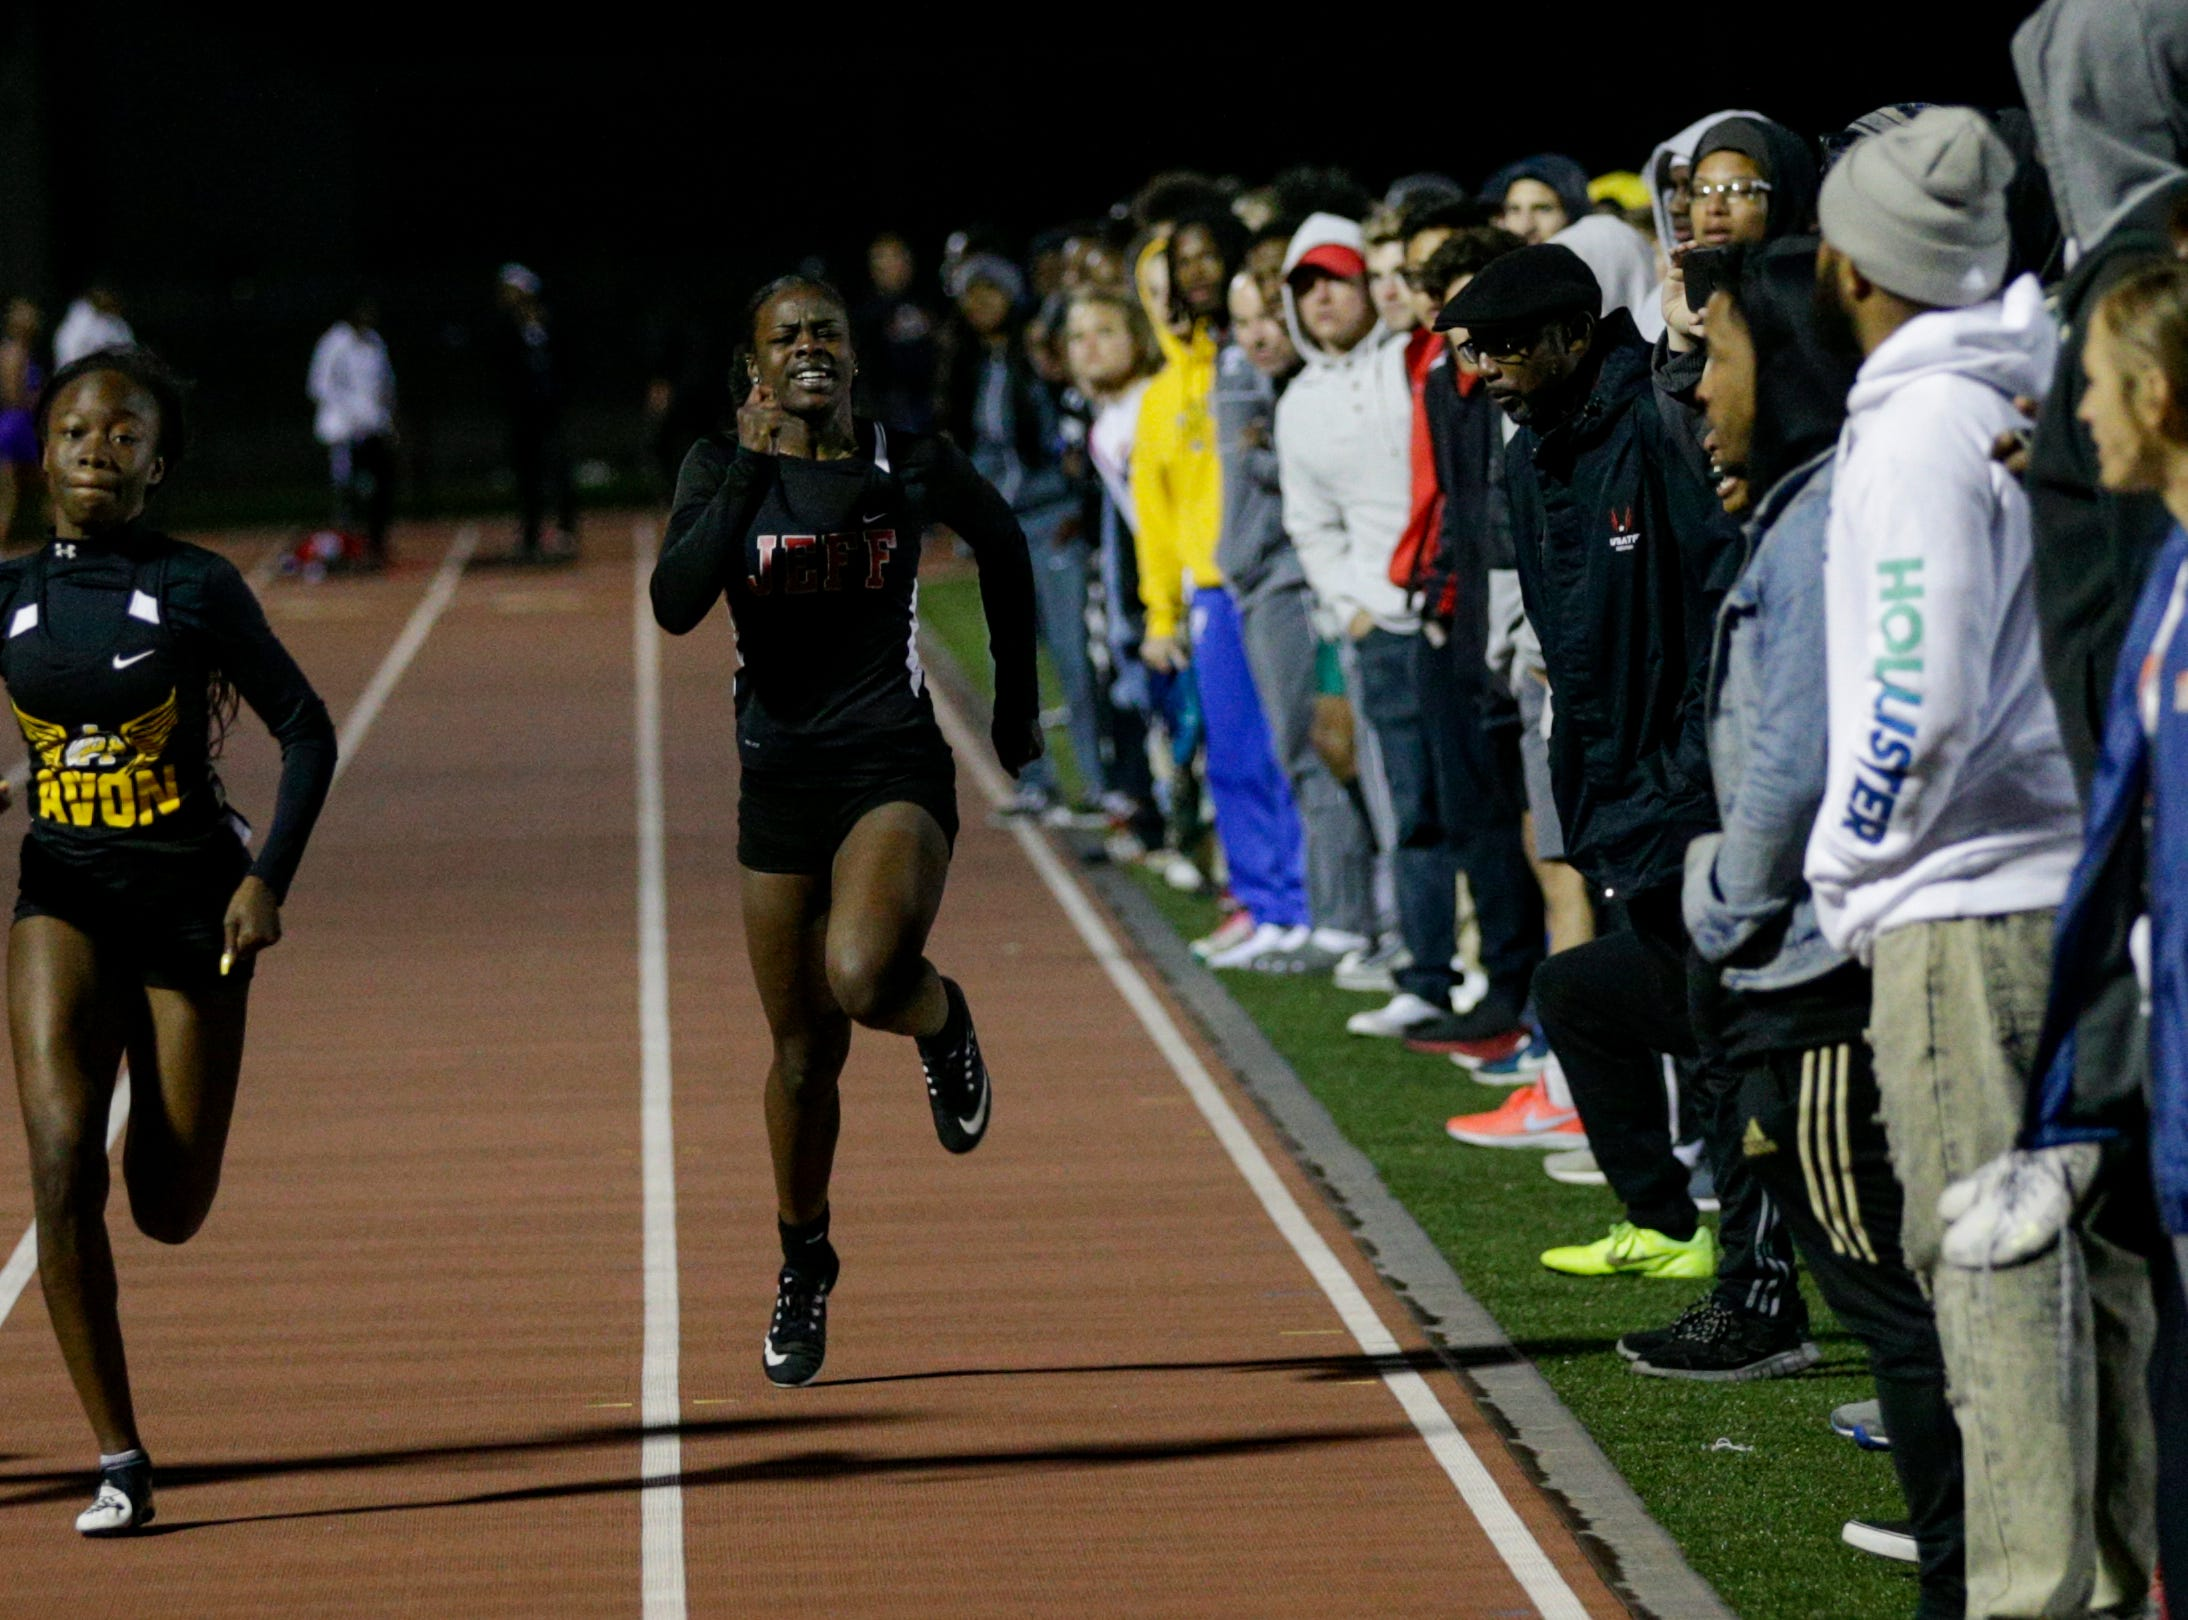 Lafayette Jeff's Courtney Beckford, center, competes in the women's 100 meter dash during the 2019 Sprinters Showcase, Friday, April 12, 2019, at Lafayette Jeff High School in Lafayette.